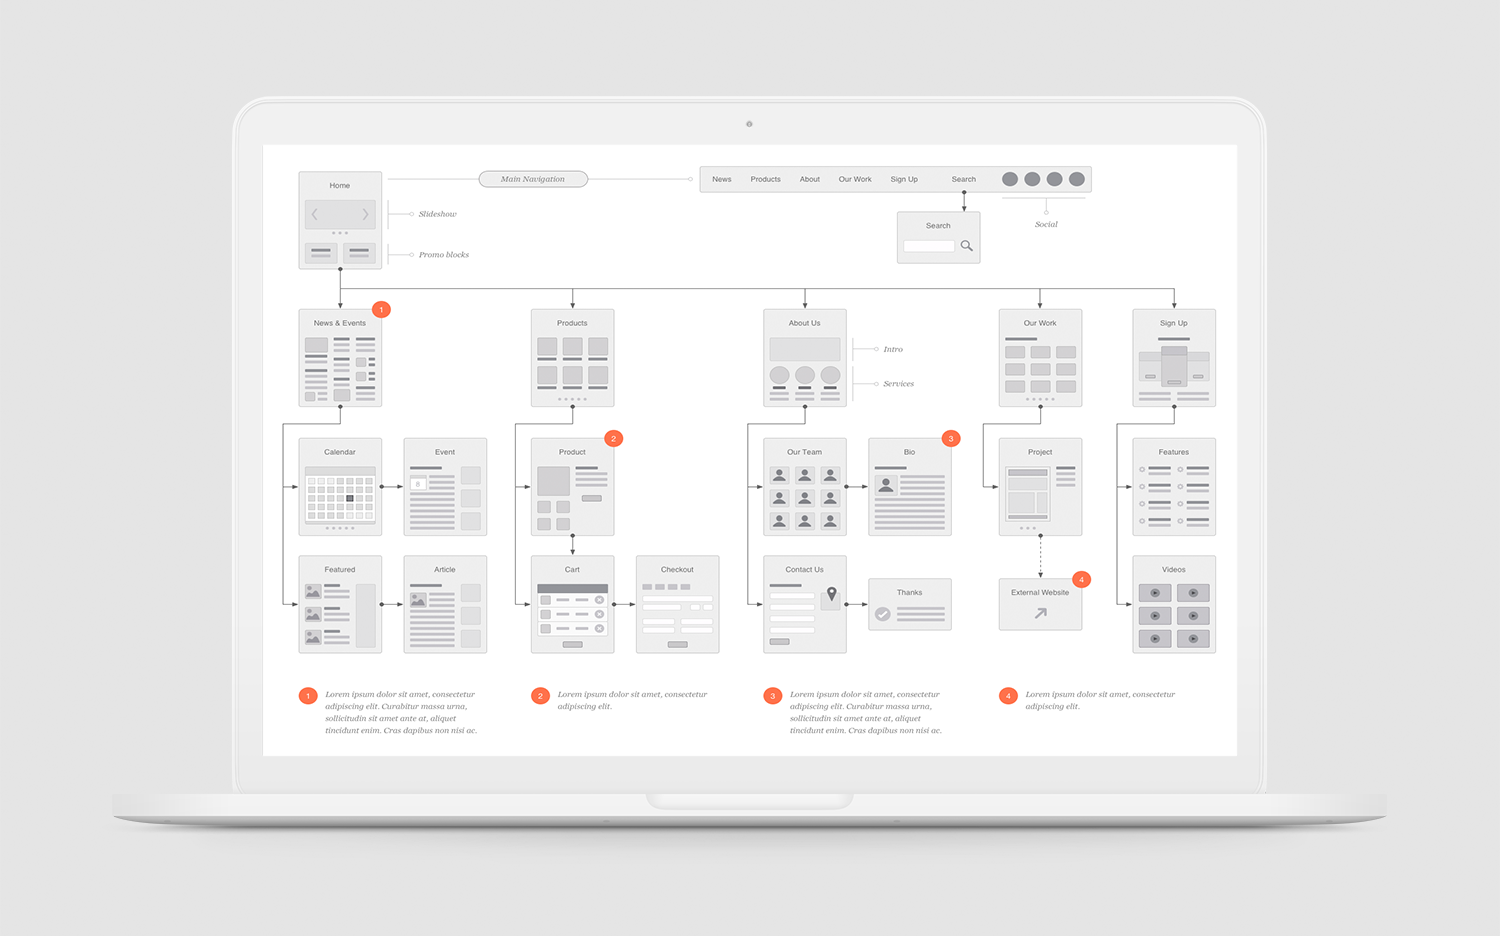 Flowchart Software for Mac - OmniGraffle interface